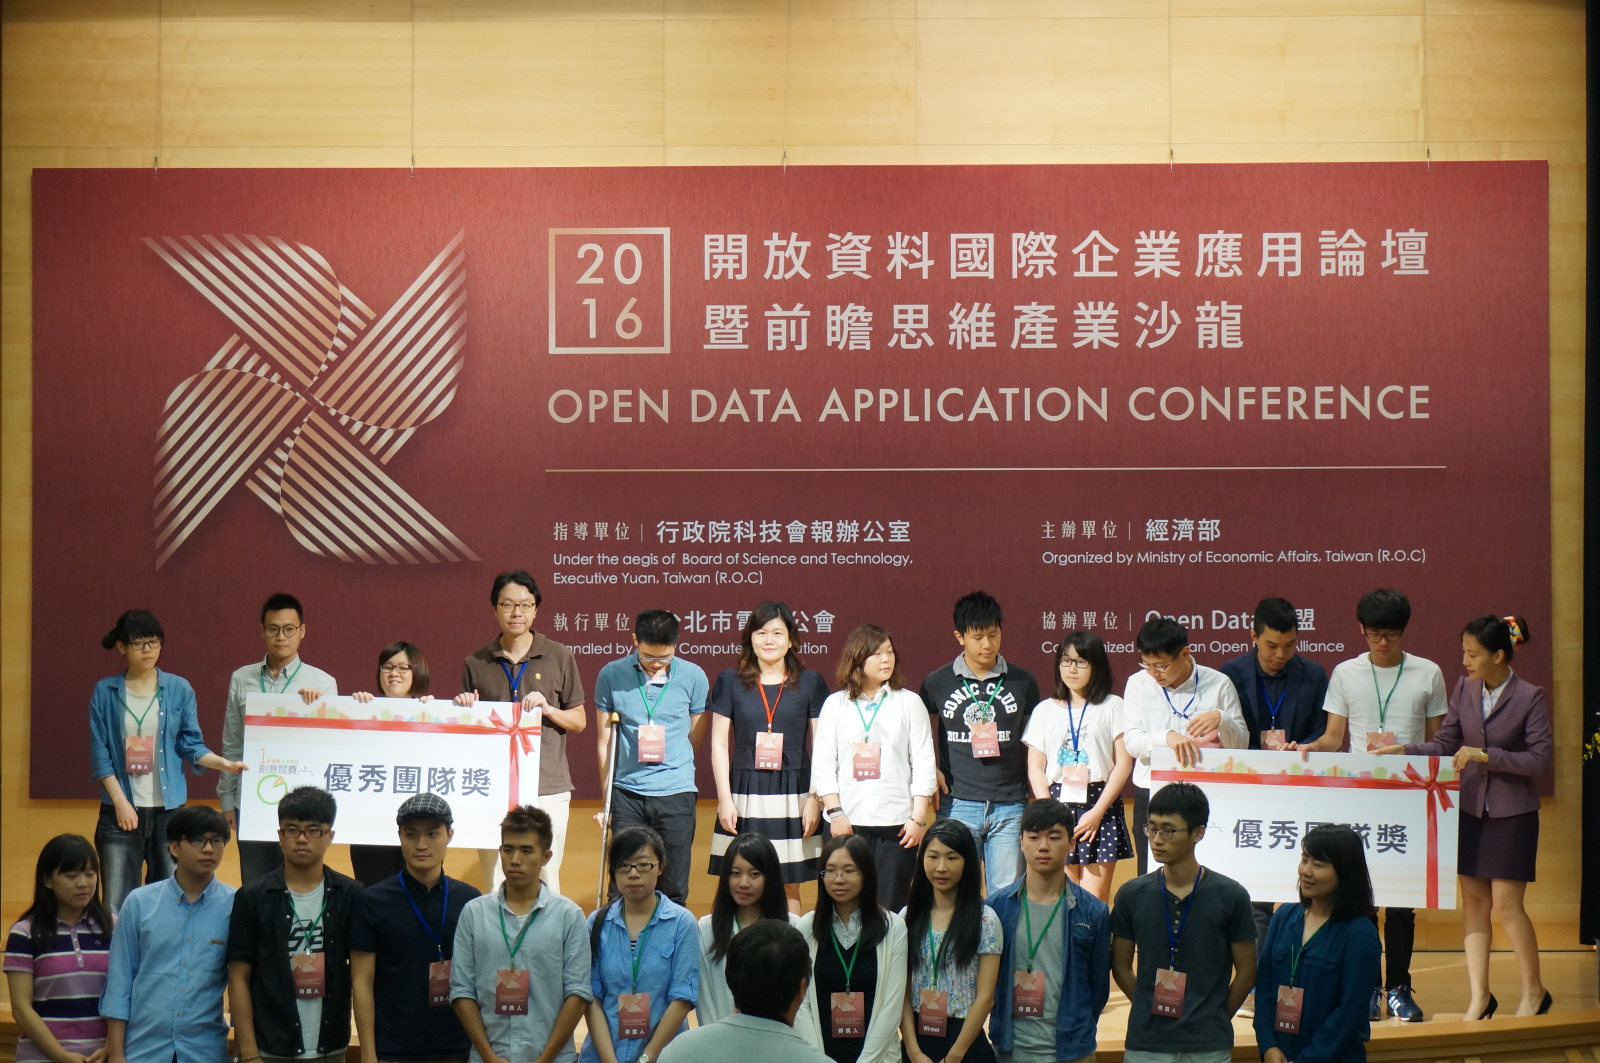 opendata-competition-2016